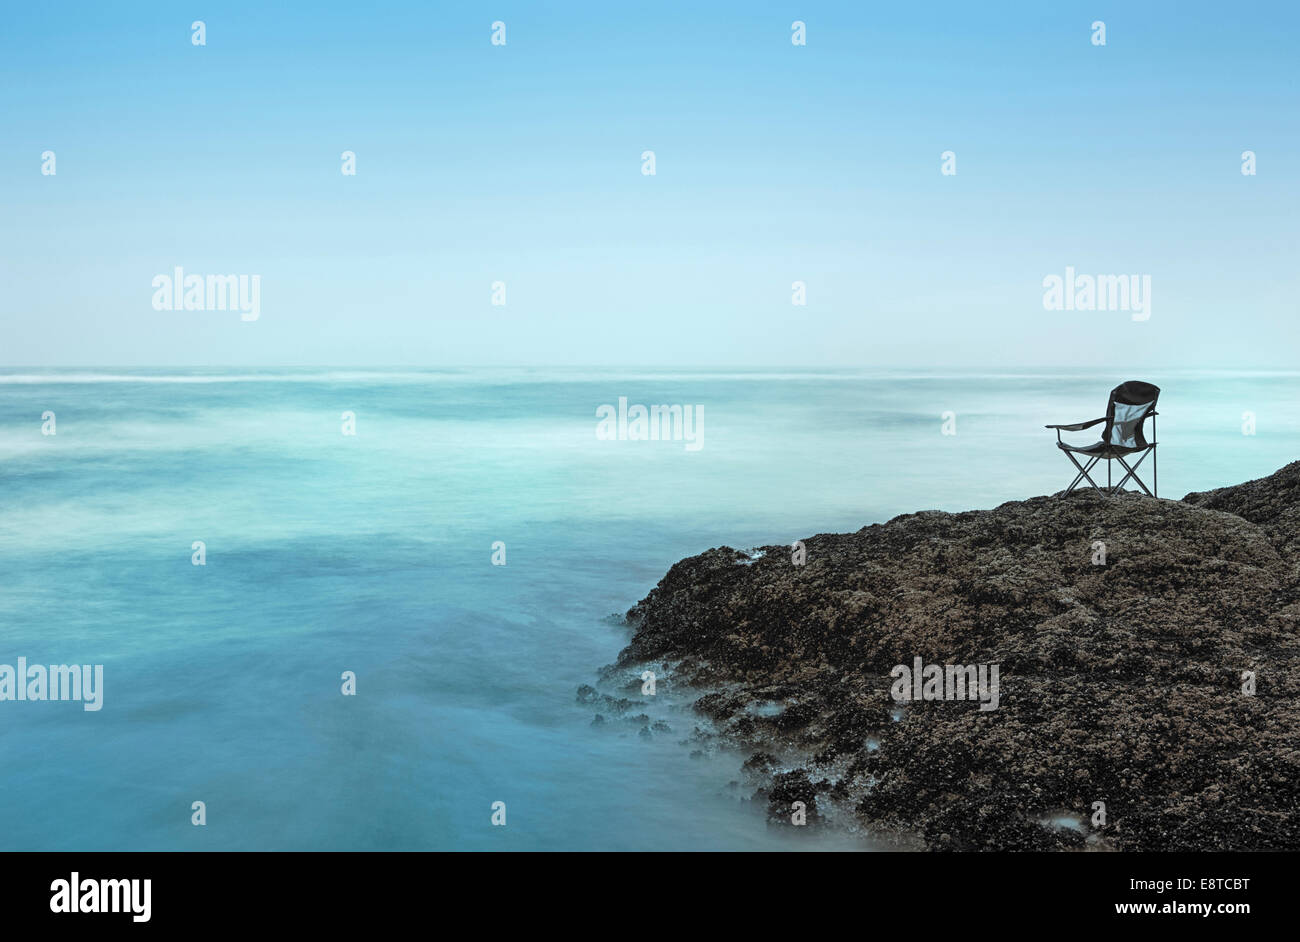 Chair overlooking waves on rocky beach - Stock Image